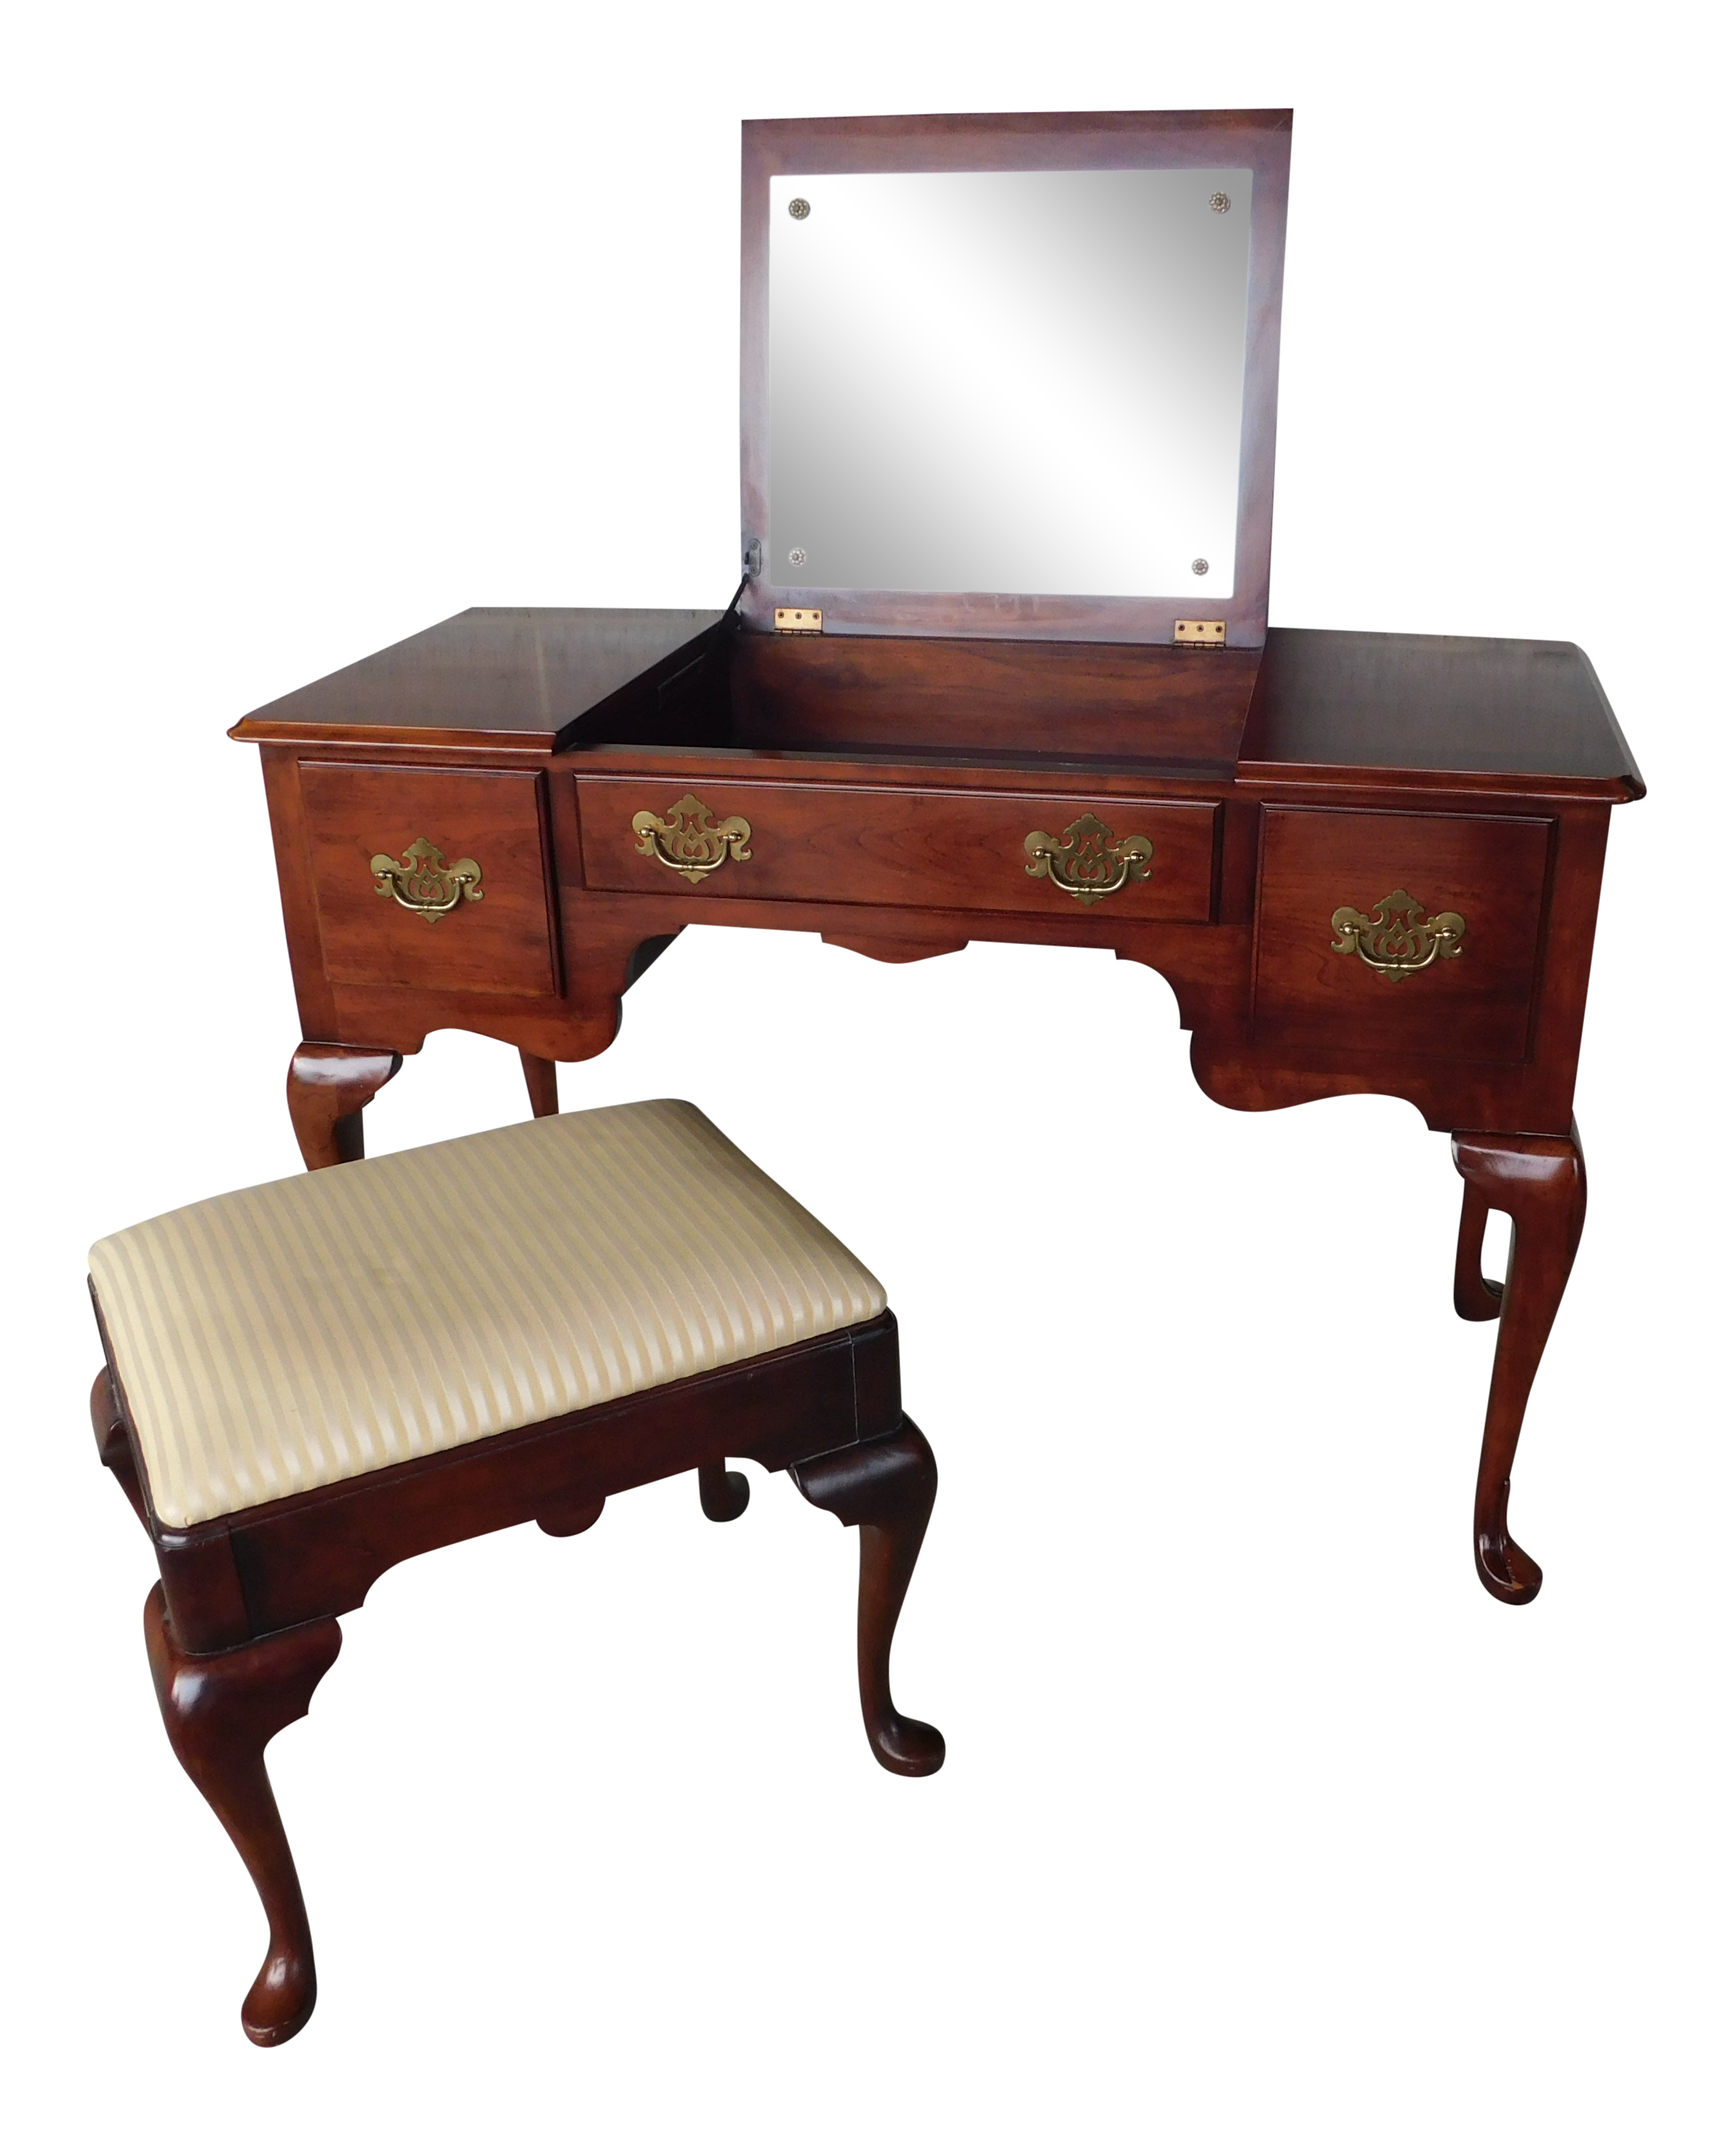 Surprising Statton Old Towne Cherry Queen Anne Style Vanity Stool Squirreltailoven Fun Painted Chair Ideas Images Squirreltailovenorg